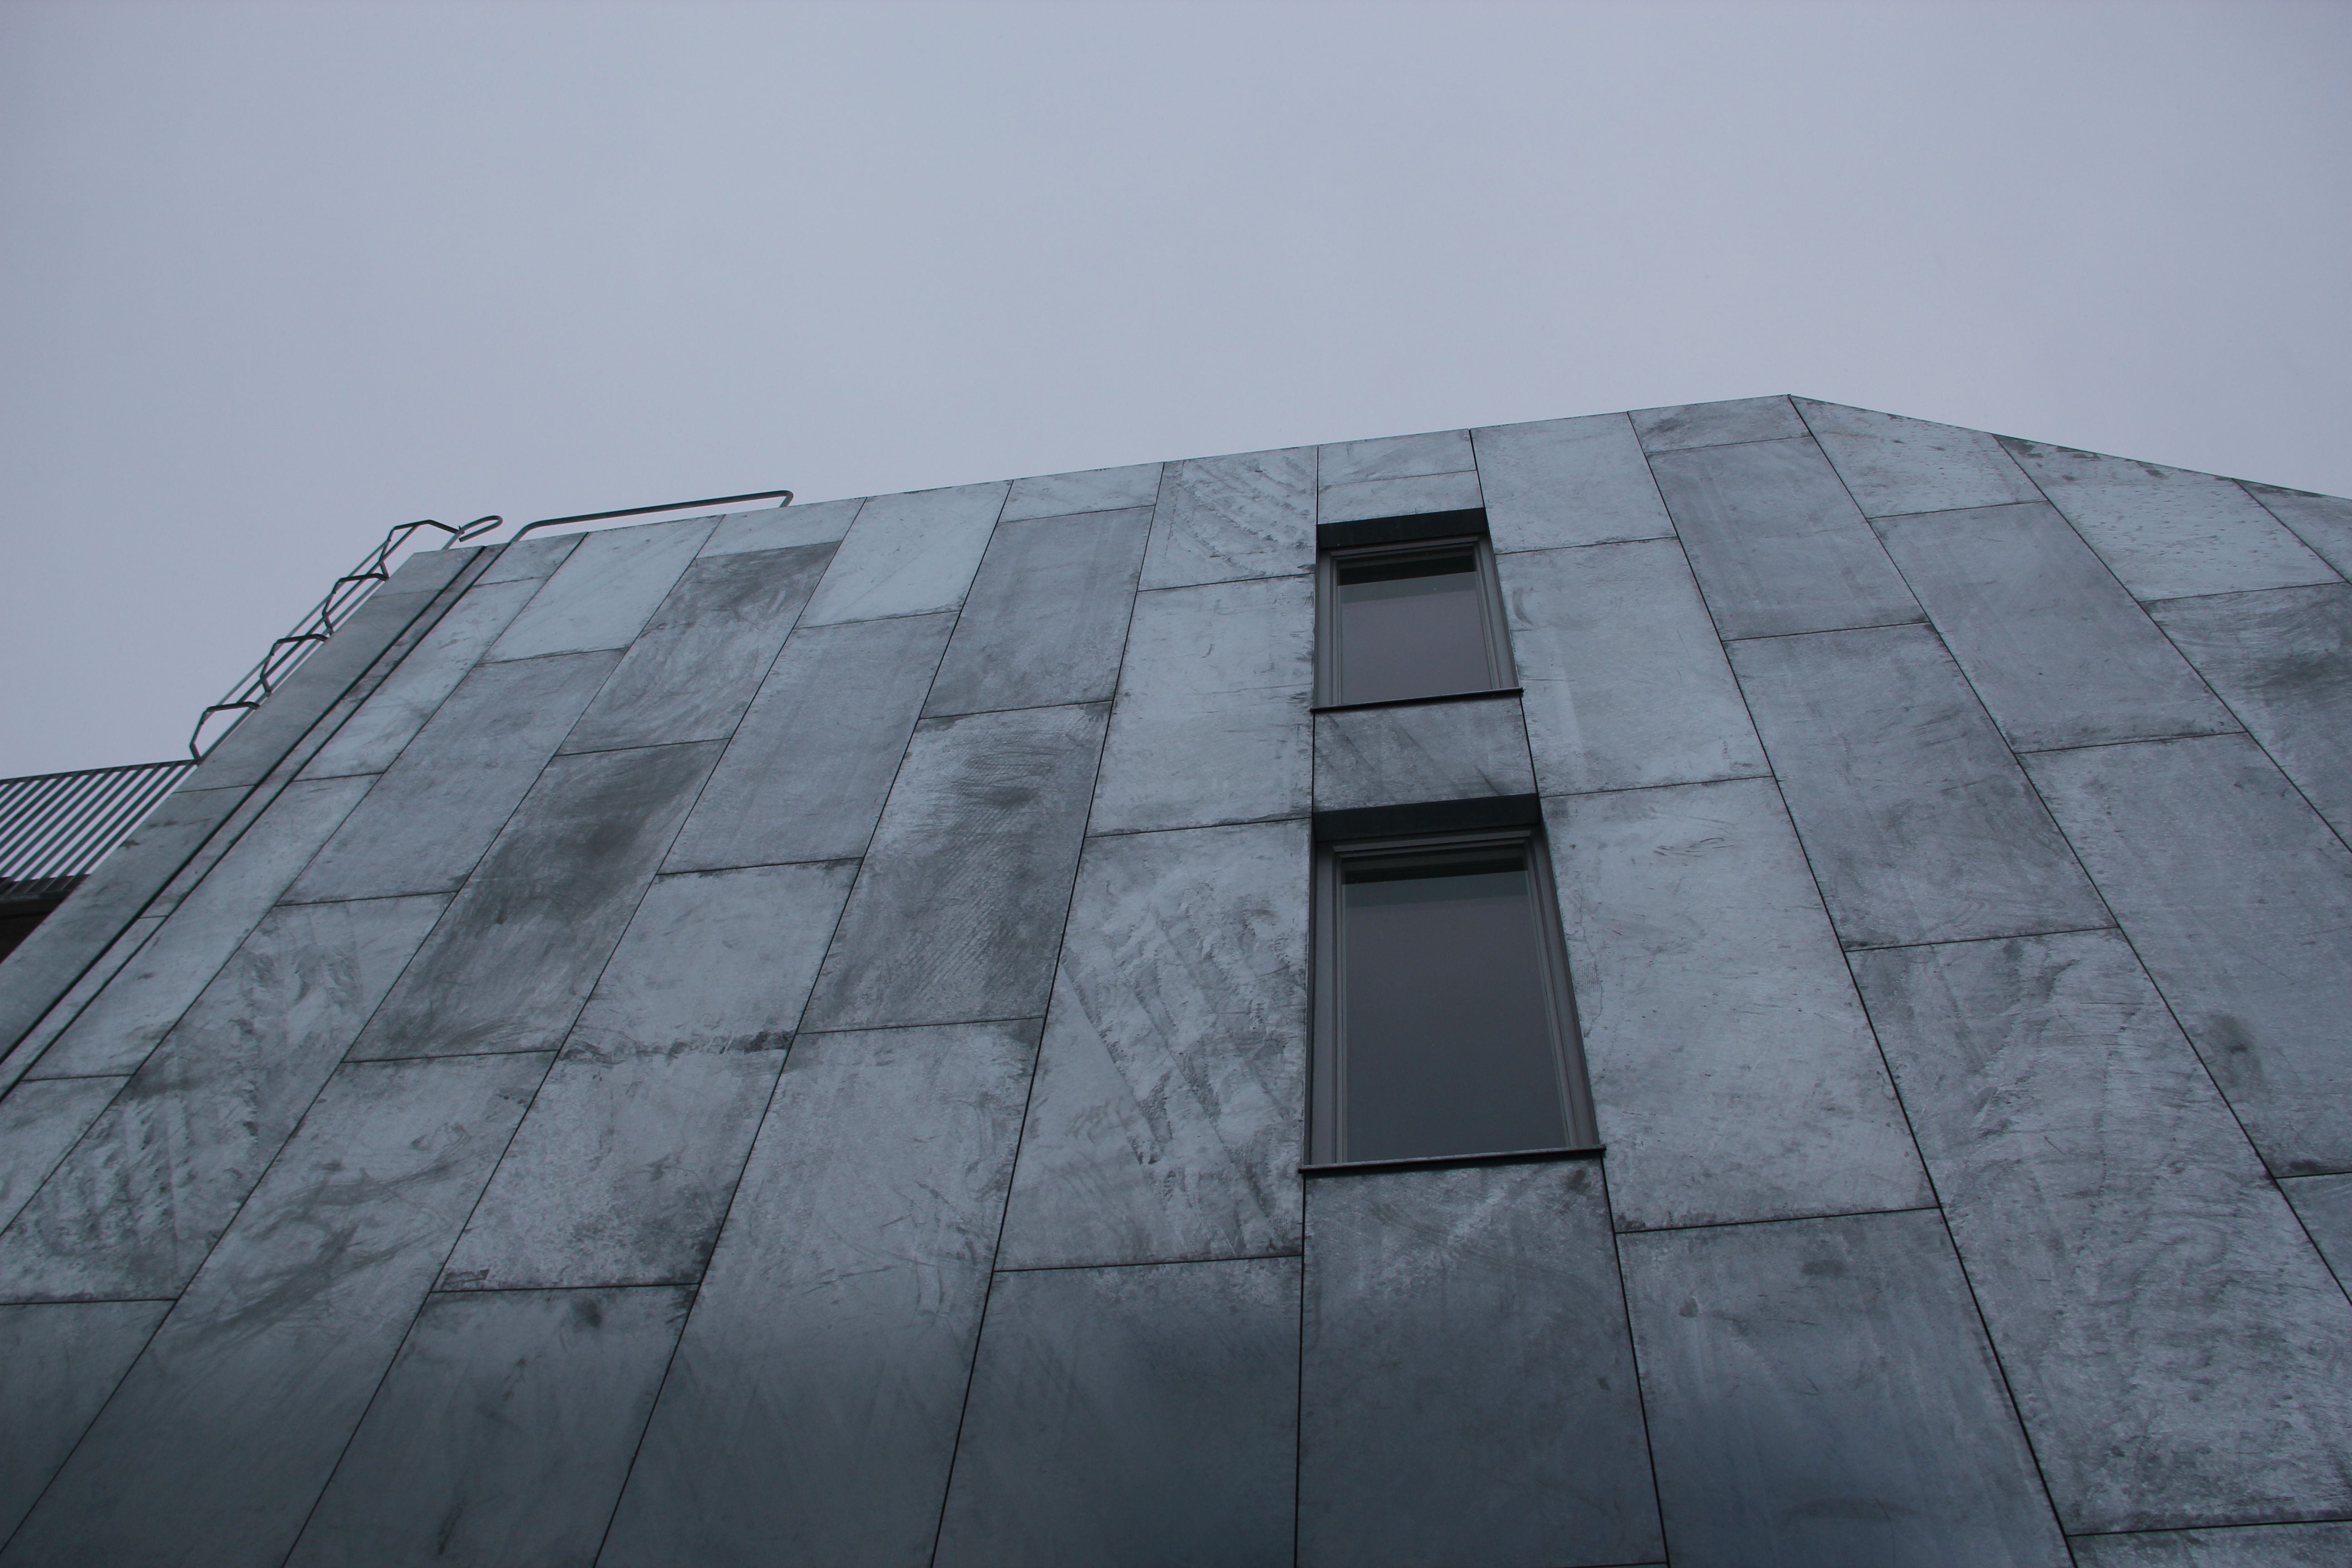 Galvanized Roofing Sheet Cladding : Hot dip galvanized steel cladding tappen project facades